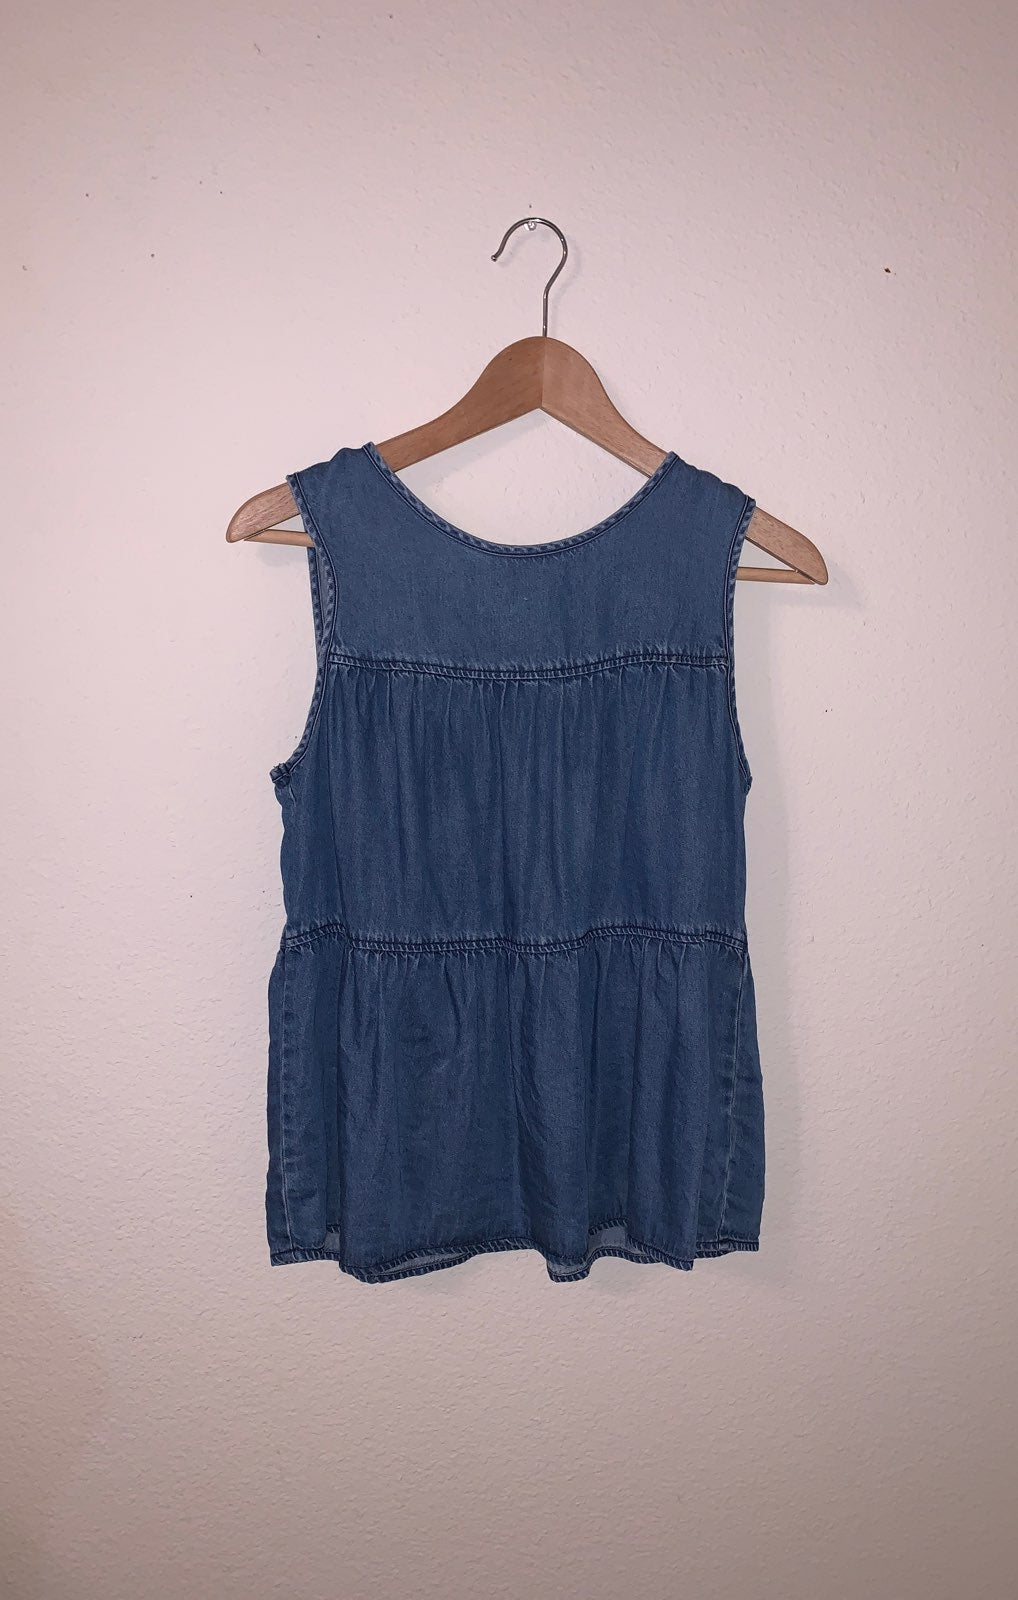 Universal Thread Top size Small